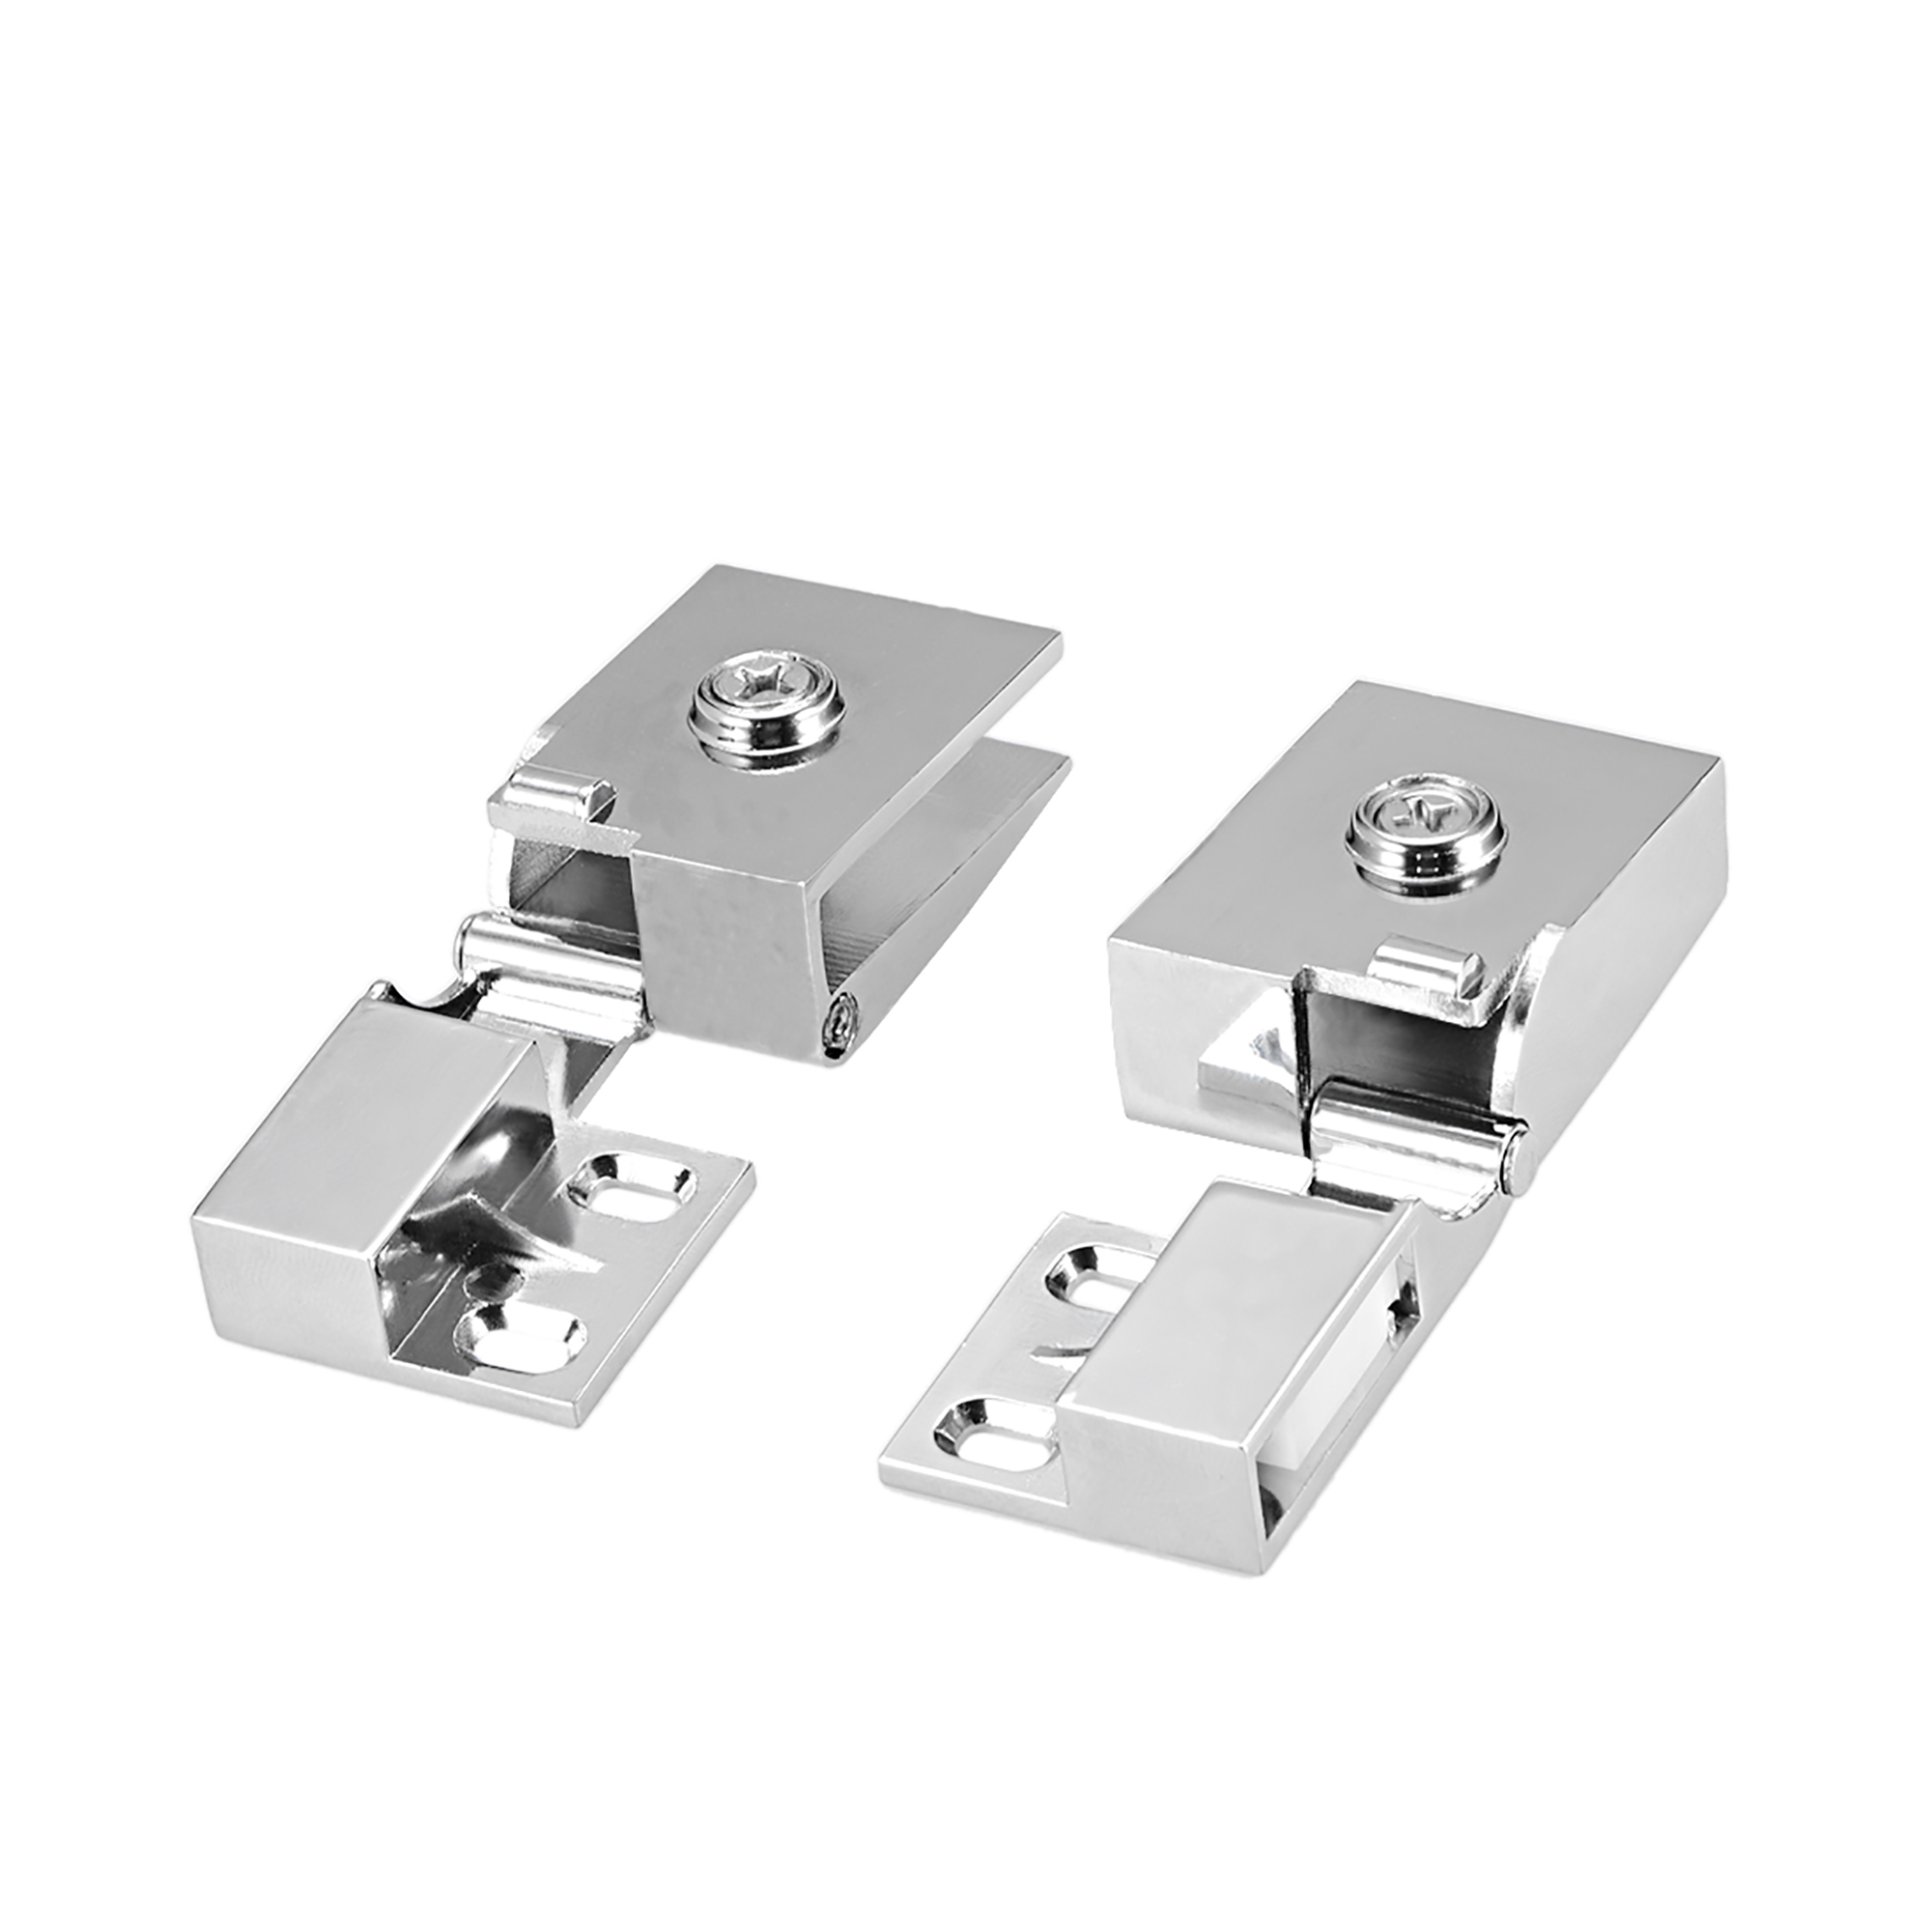 Uxcell 1Pair Glass Door Showcase Cabinet Door Hinge Glass Clamp for3-5mm Thickness - image 2 of 4